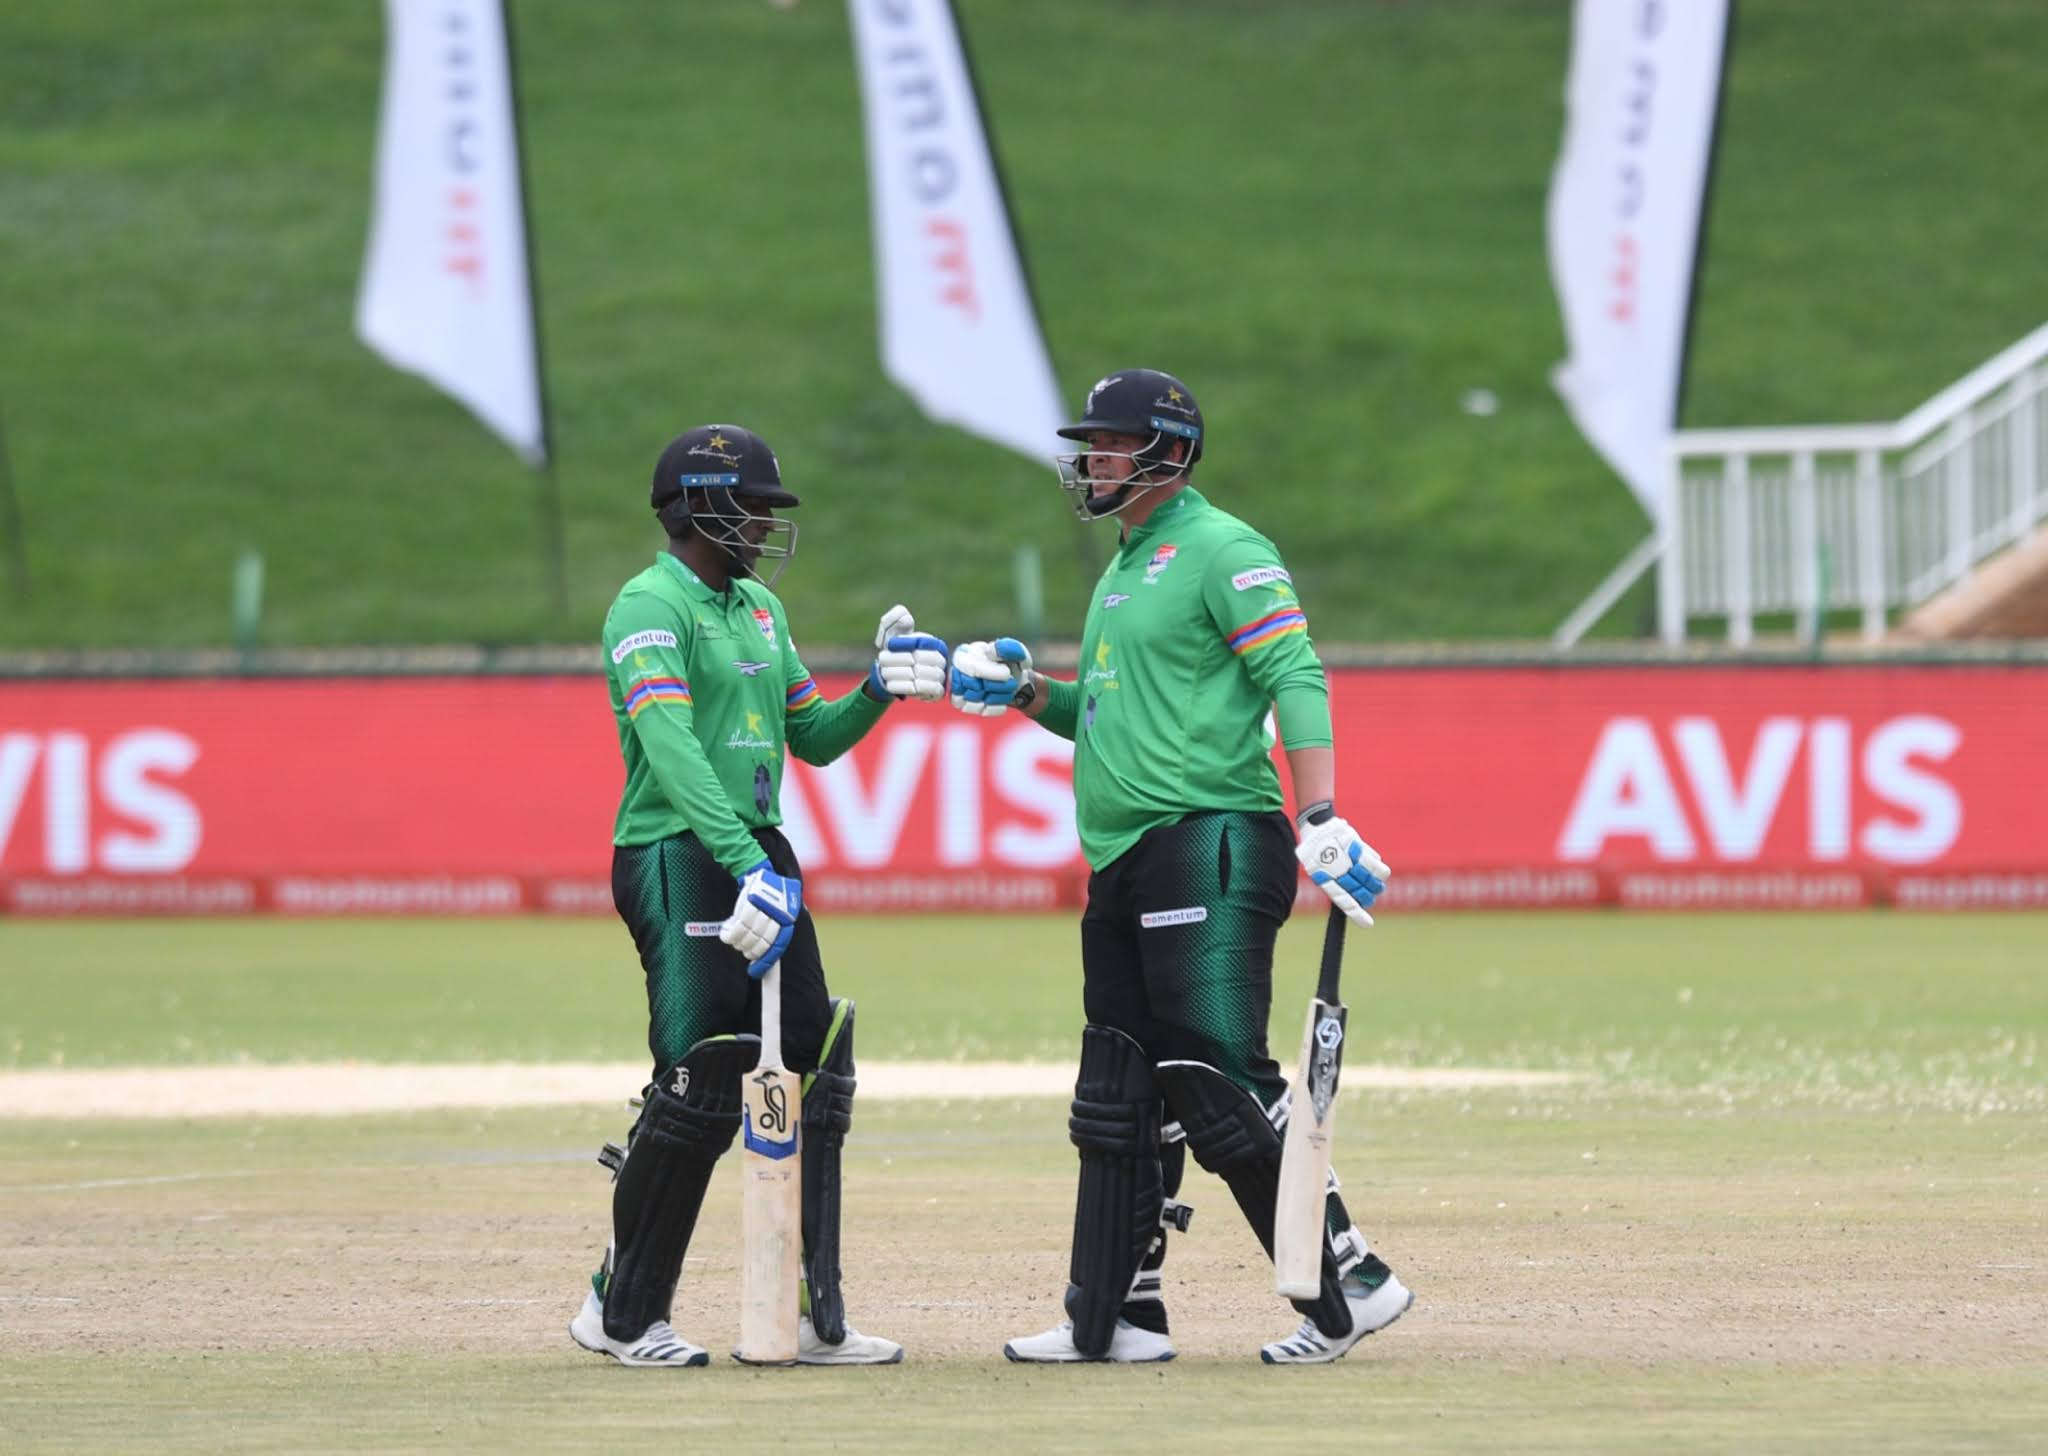 Frylinck & Muthusamy heroics guide Dolphins to MODC final